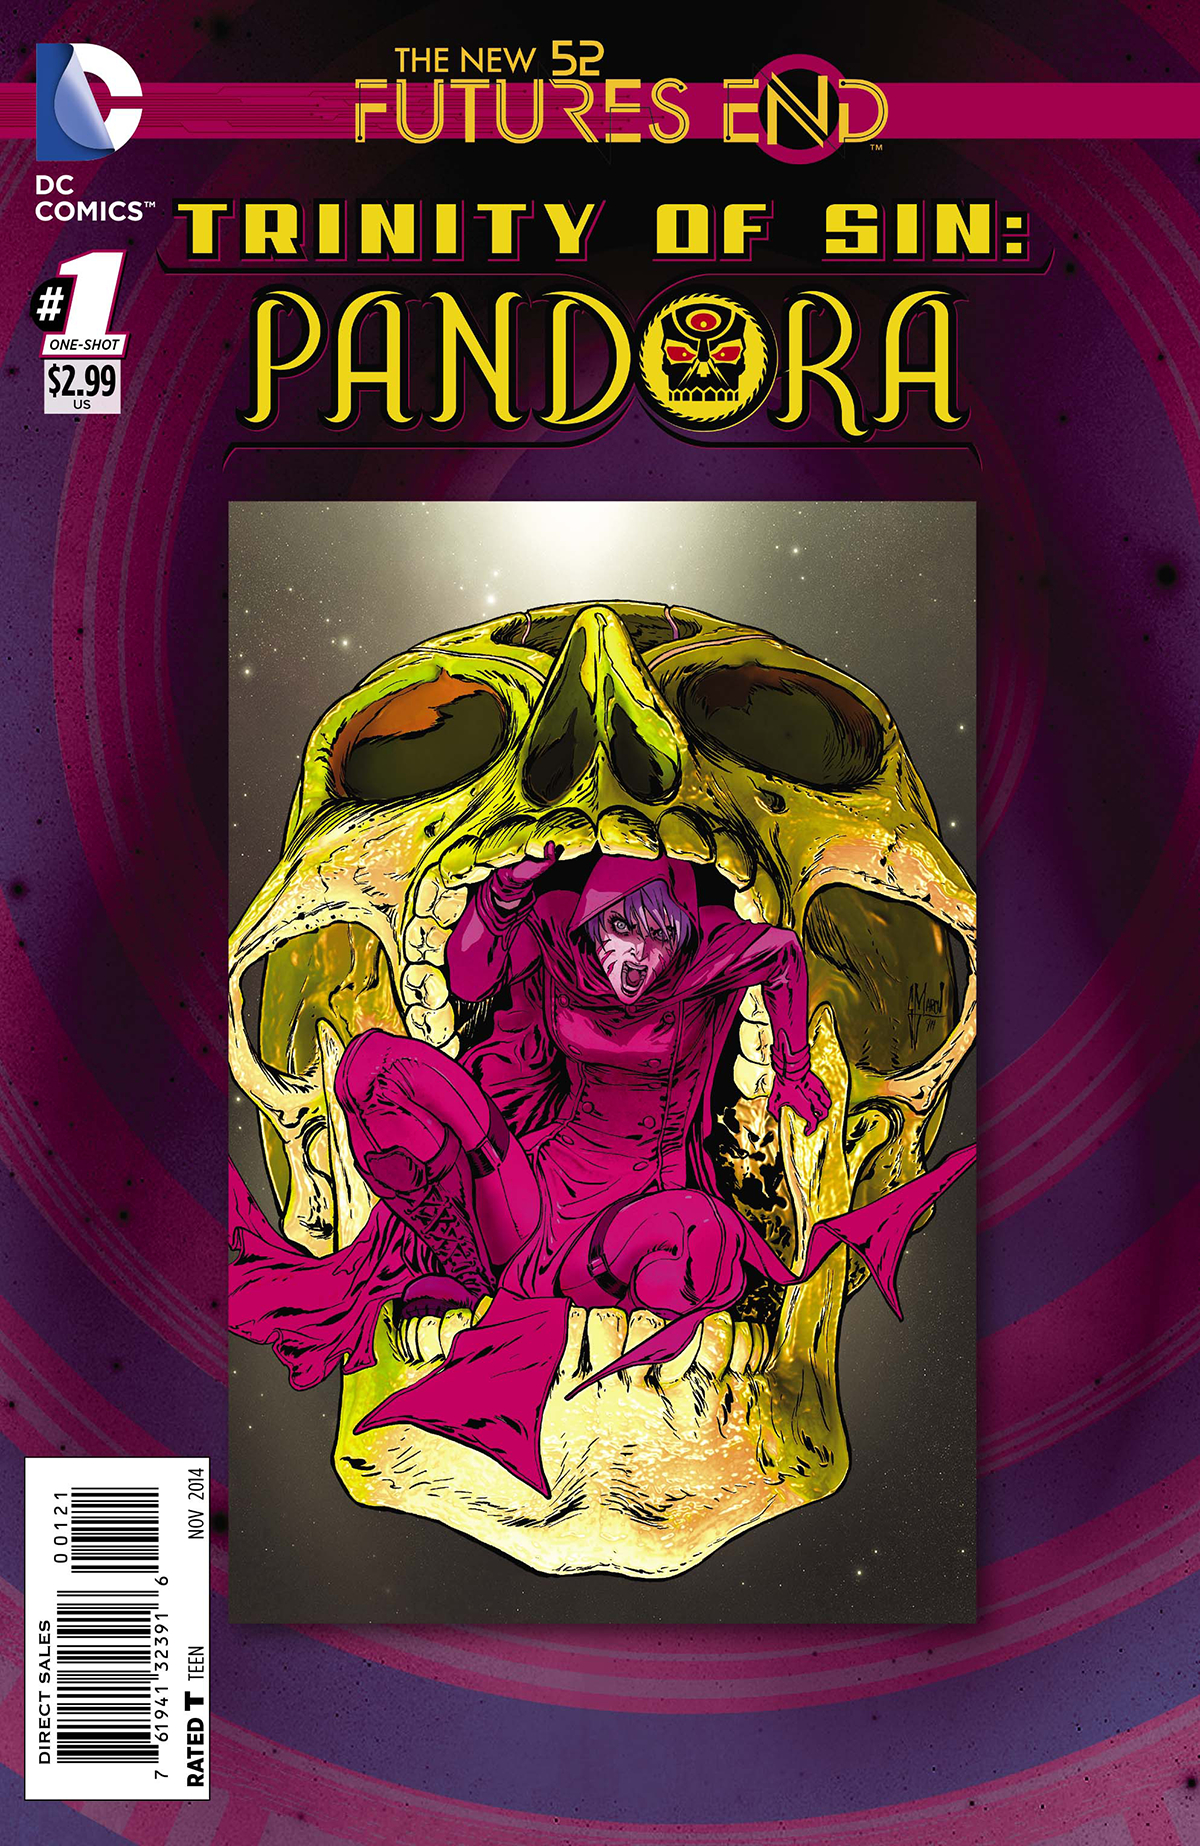 TRINITY OF SIN PANDORA FUTURES END #1 STANDARD ED